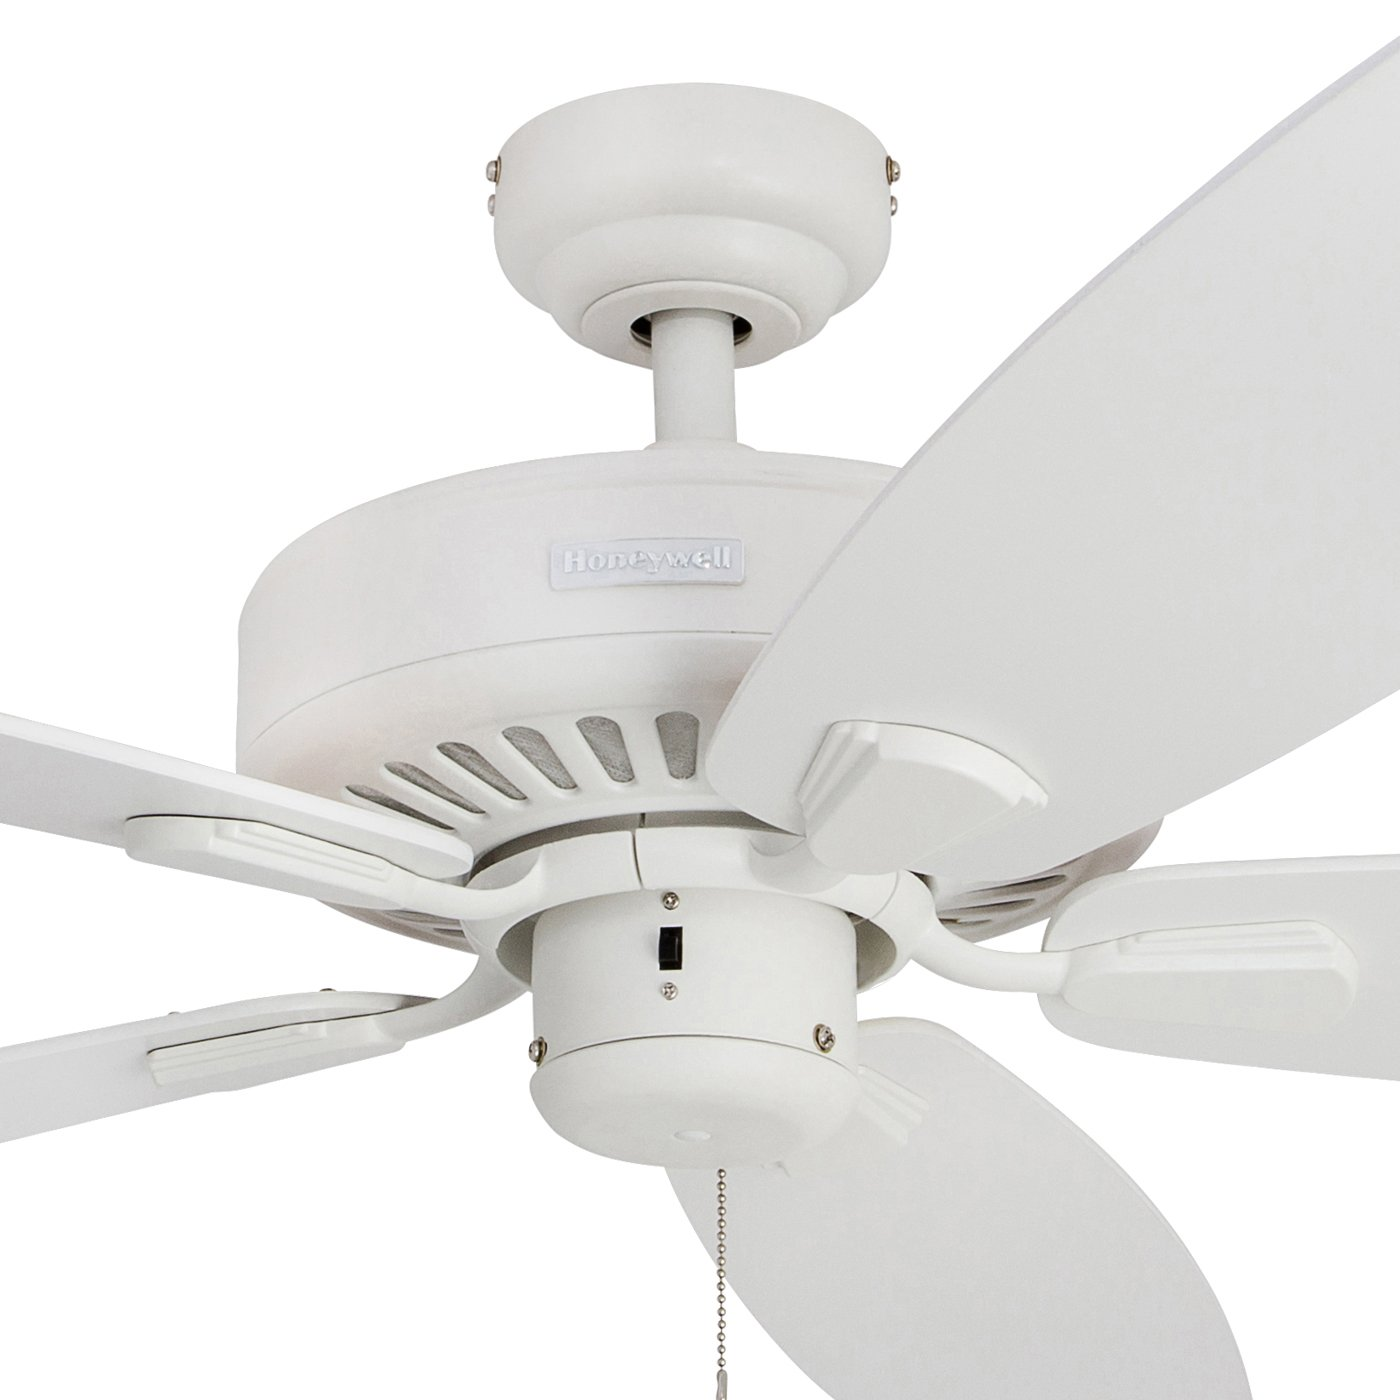 Honeywell Sutton 52-Inch Ceiling Fan, Energy Star Certified, Five Reversible White Maple Blades, White